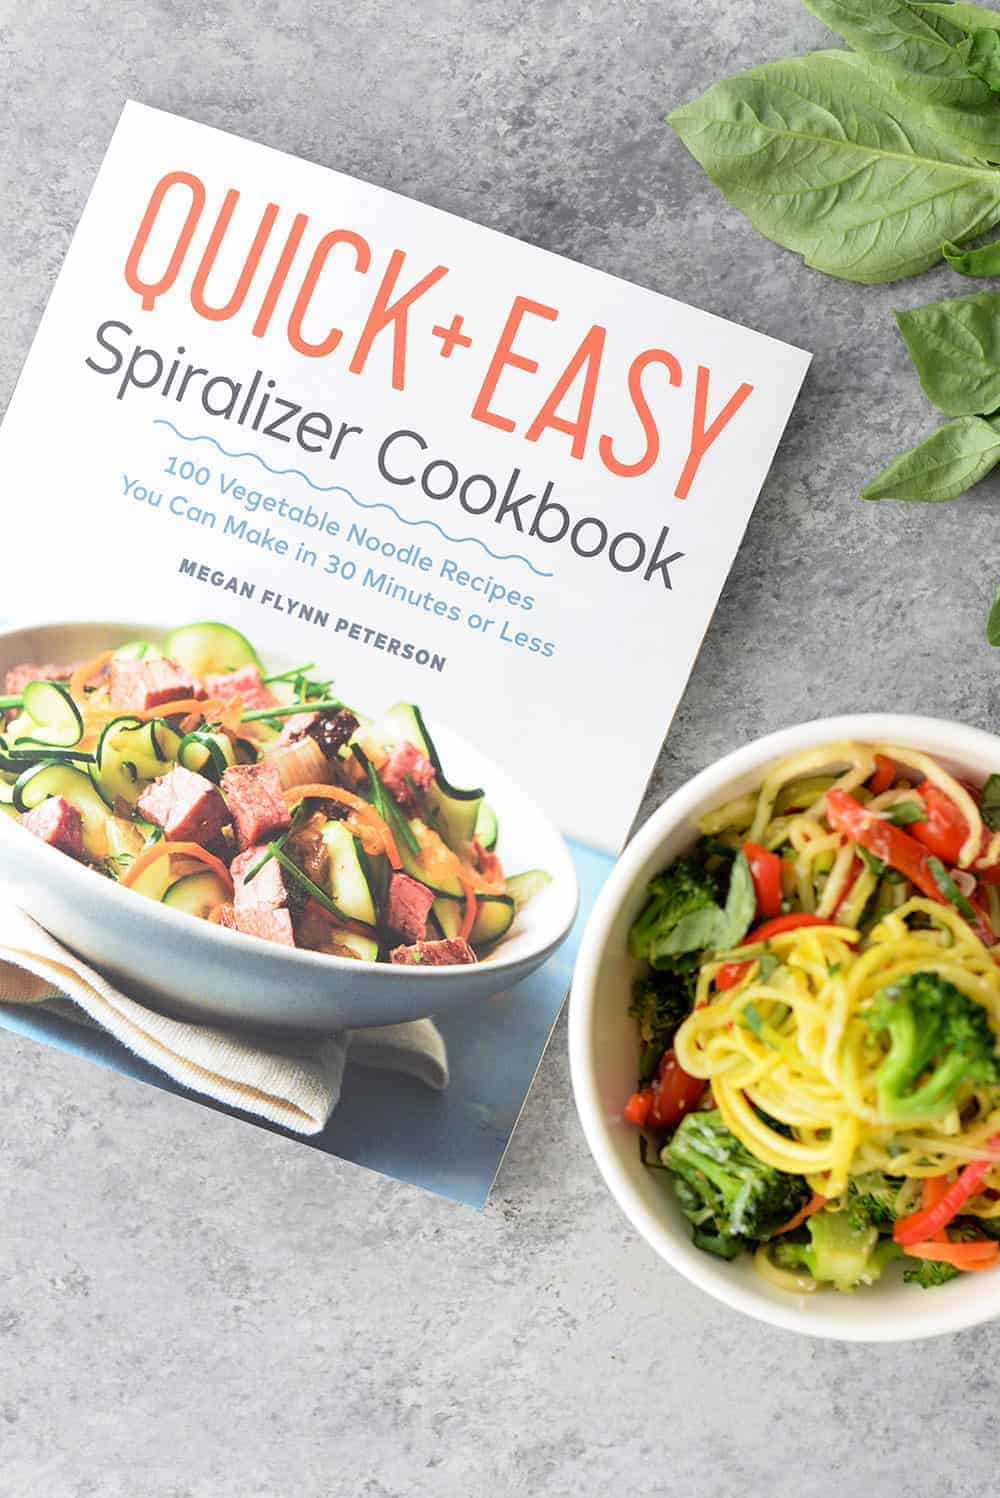 quick and easy spiralizer cookbook